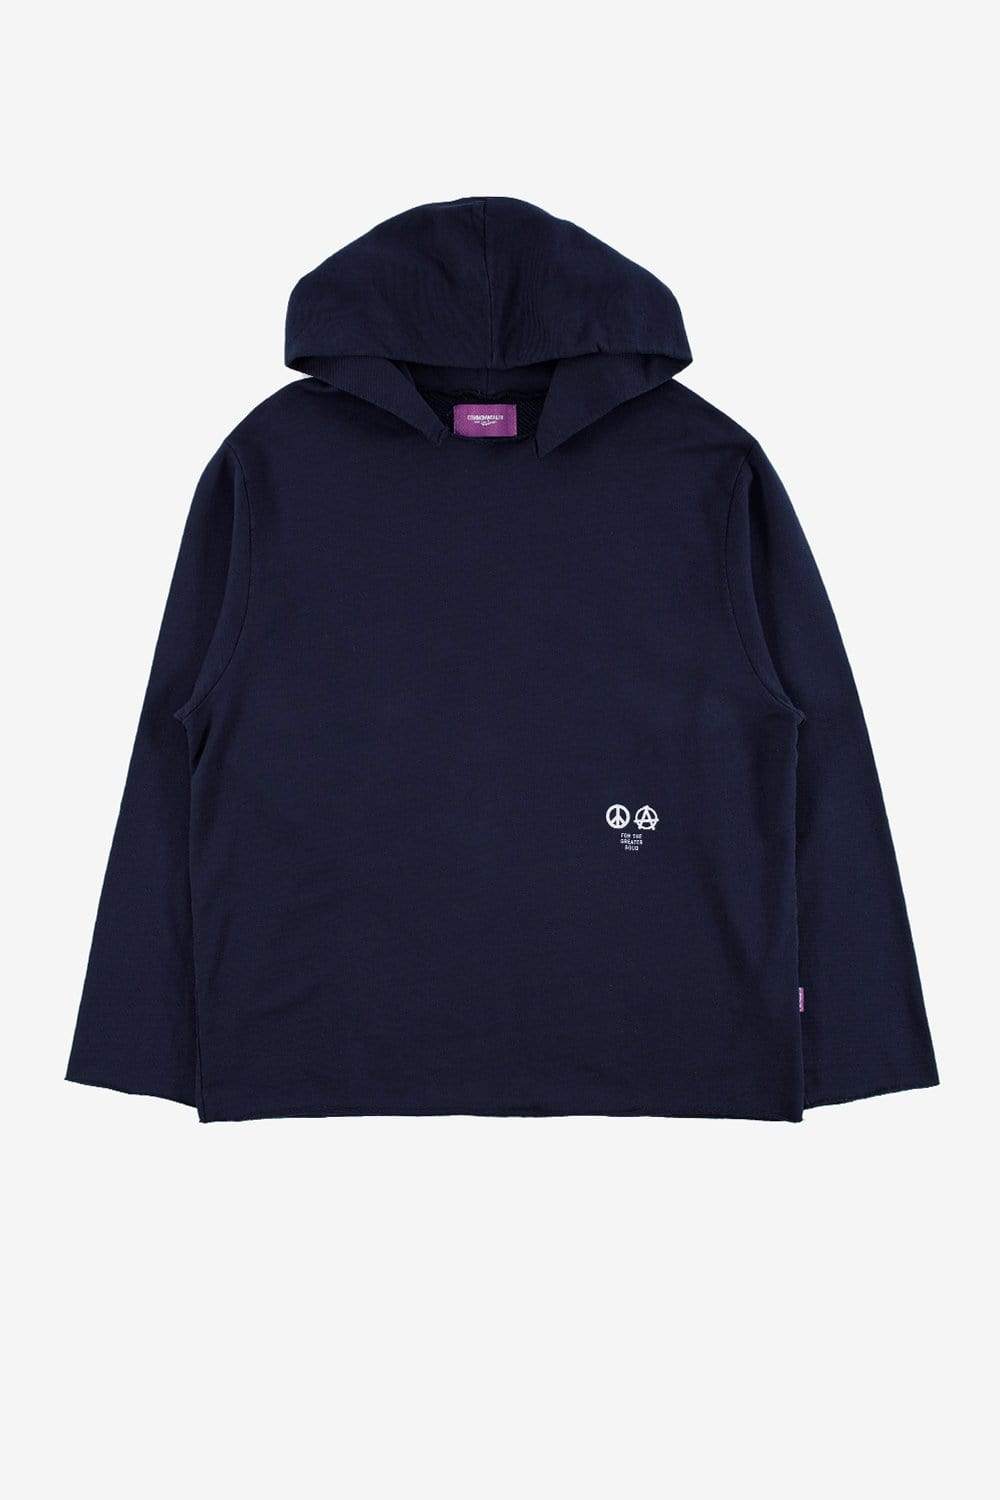 Commonwealth Apparel XL Lightweight Raw Hem Hoodie Navy